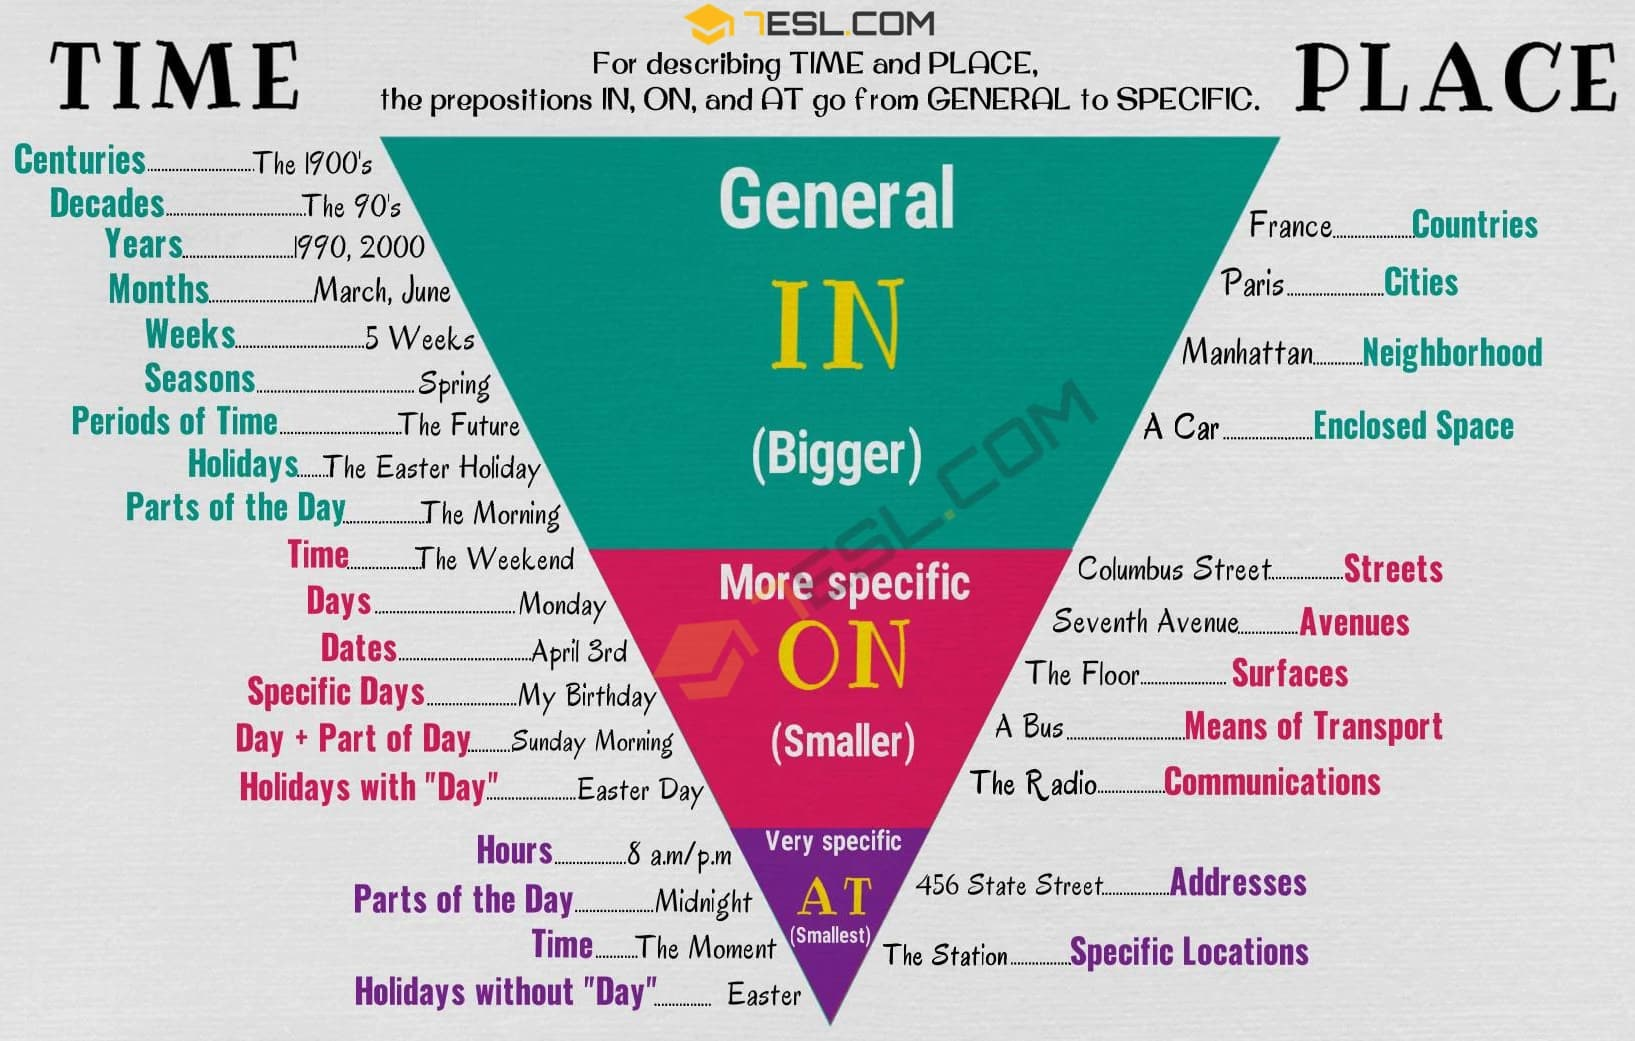 Prepositions of Time and Place (IN, ON, AT)